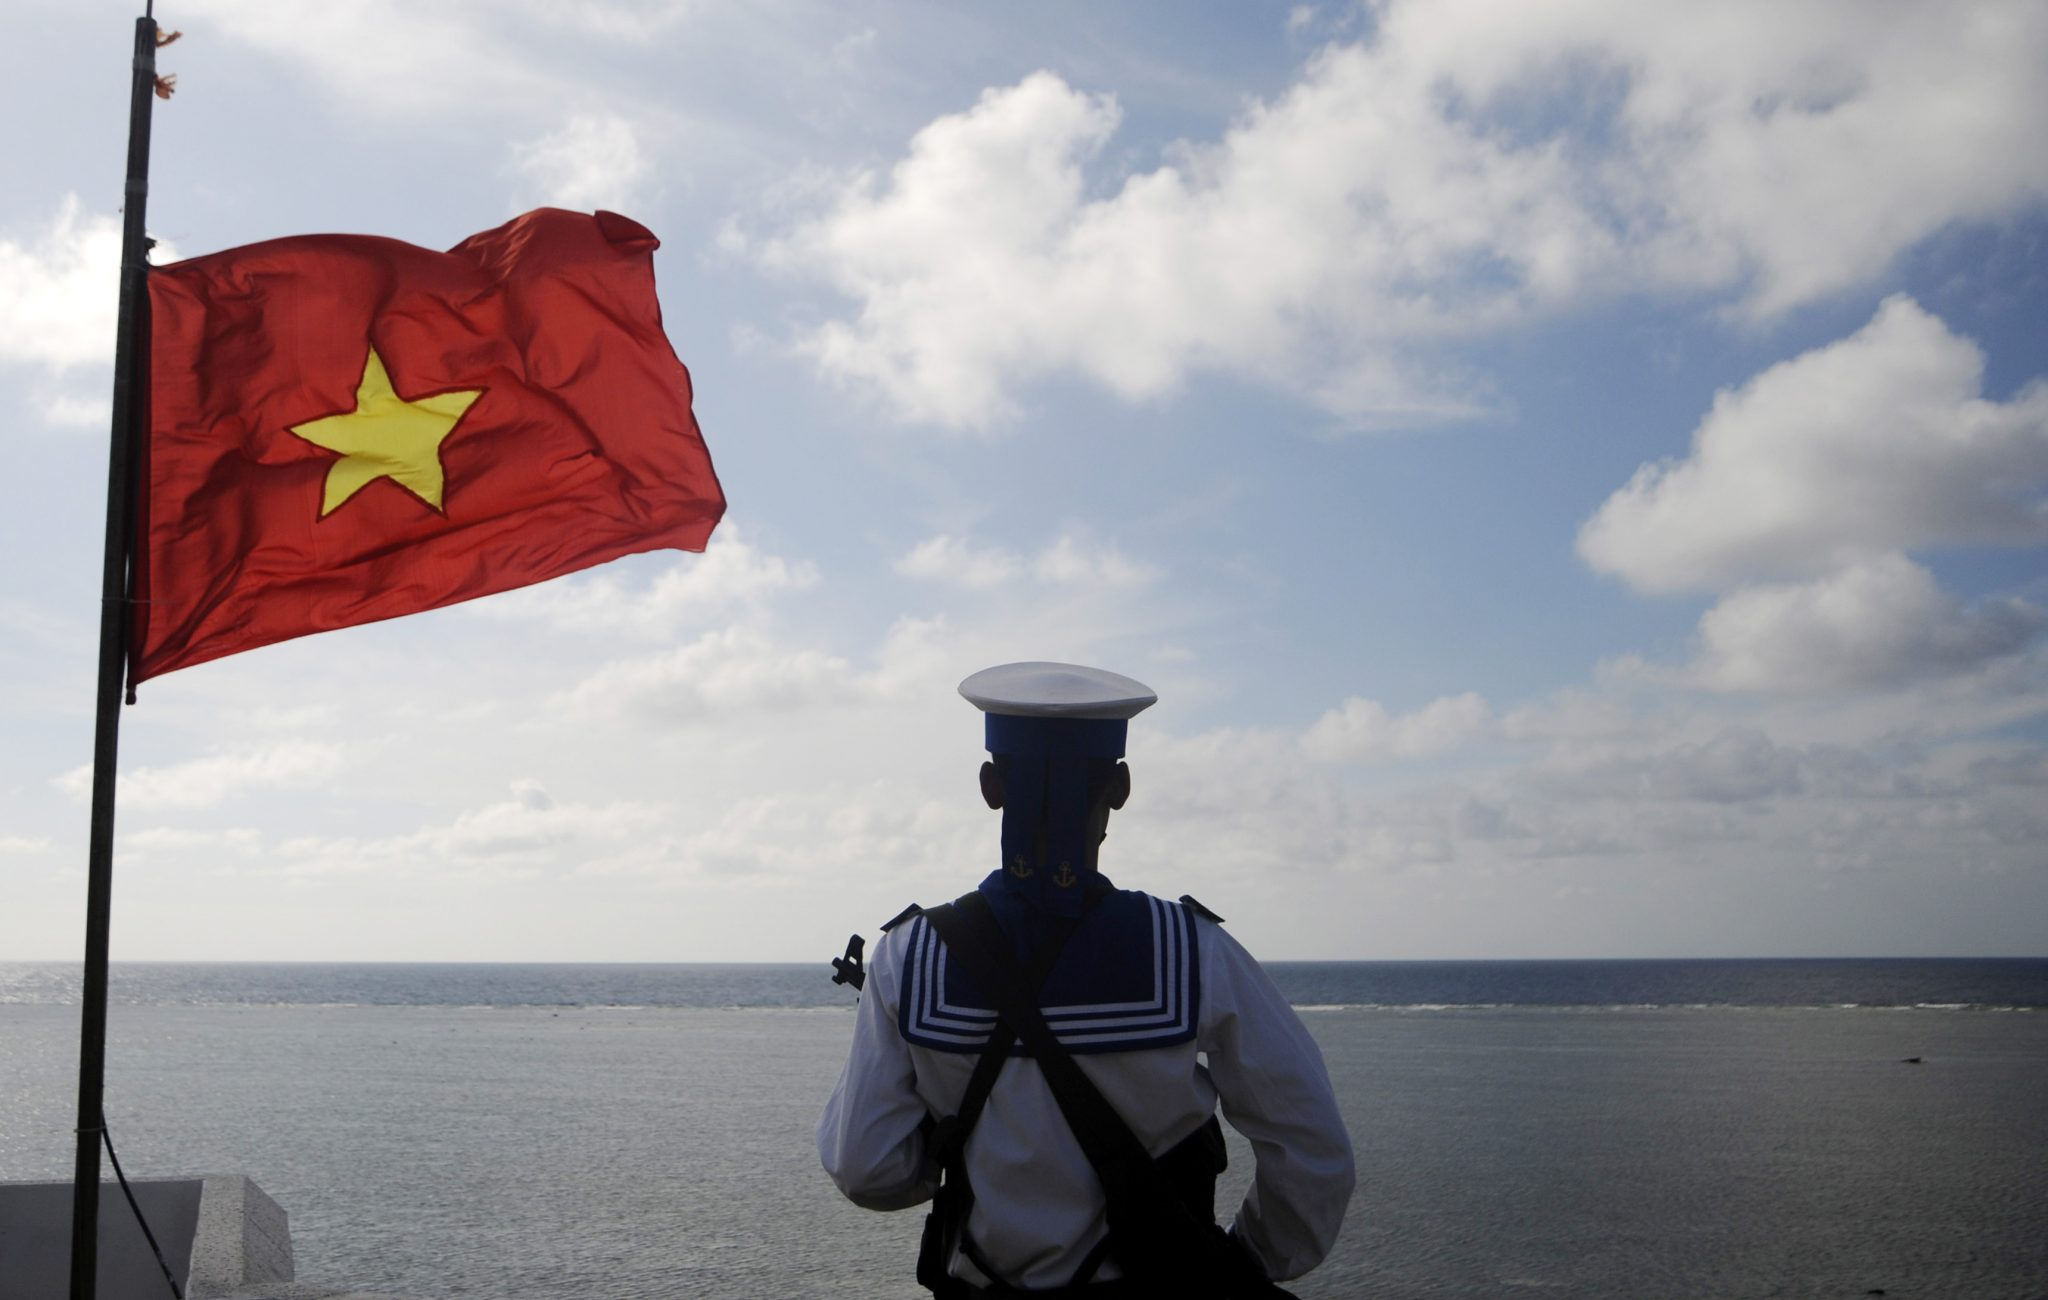 Is Vietnam open to Washington's Indo-Pacific strategy?